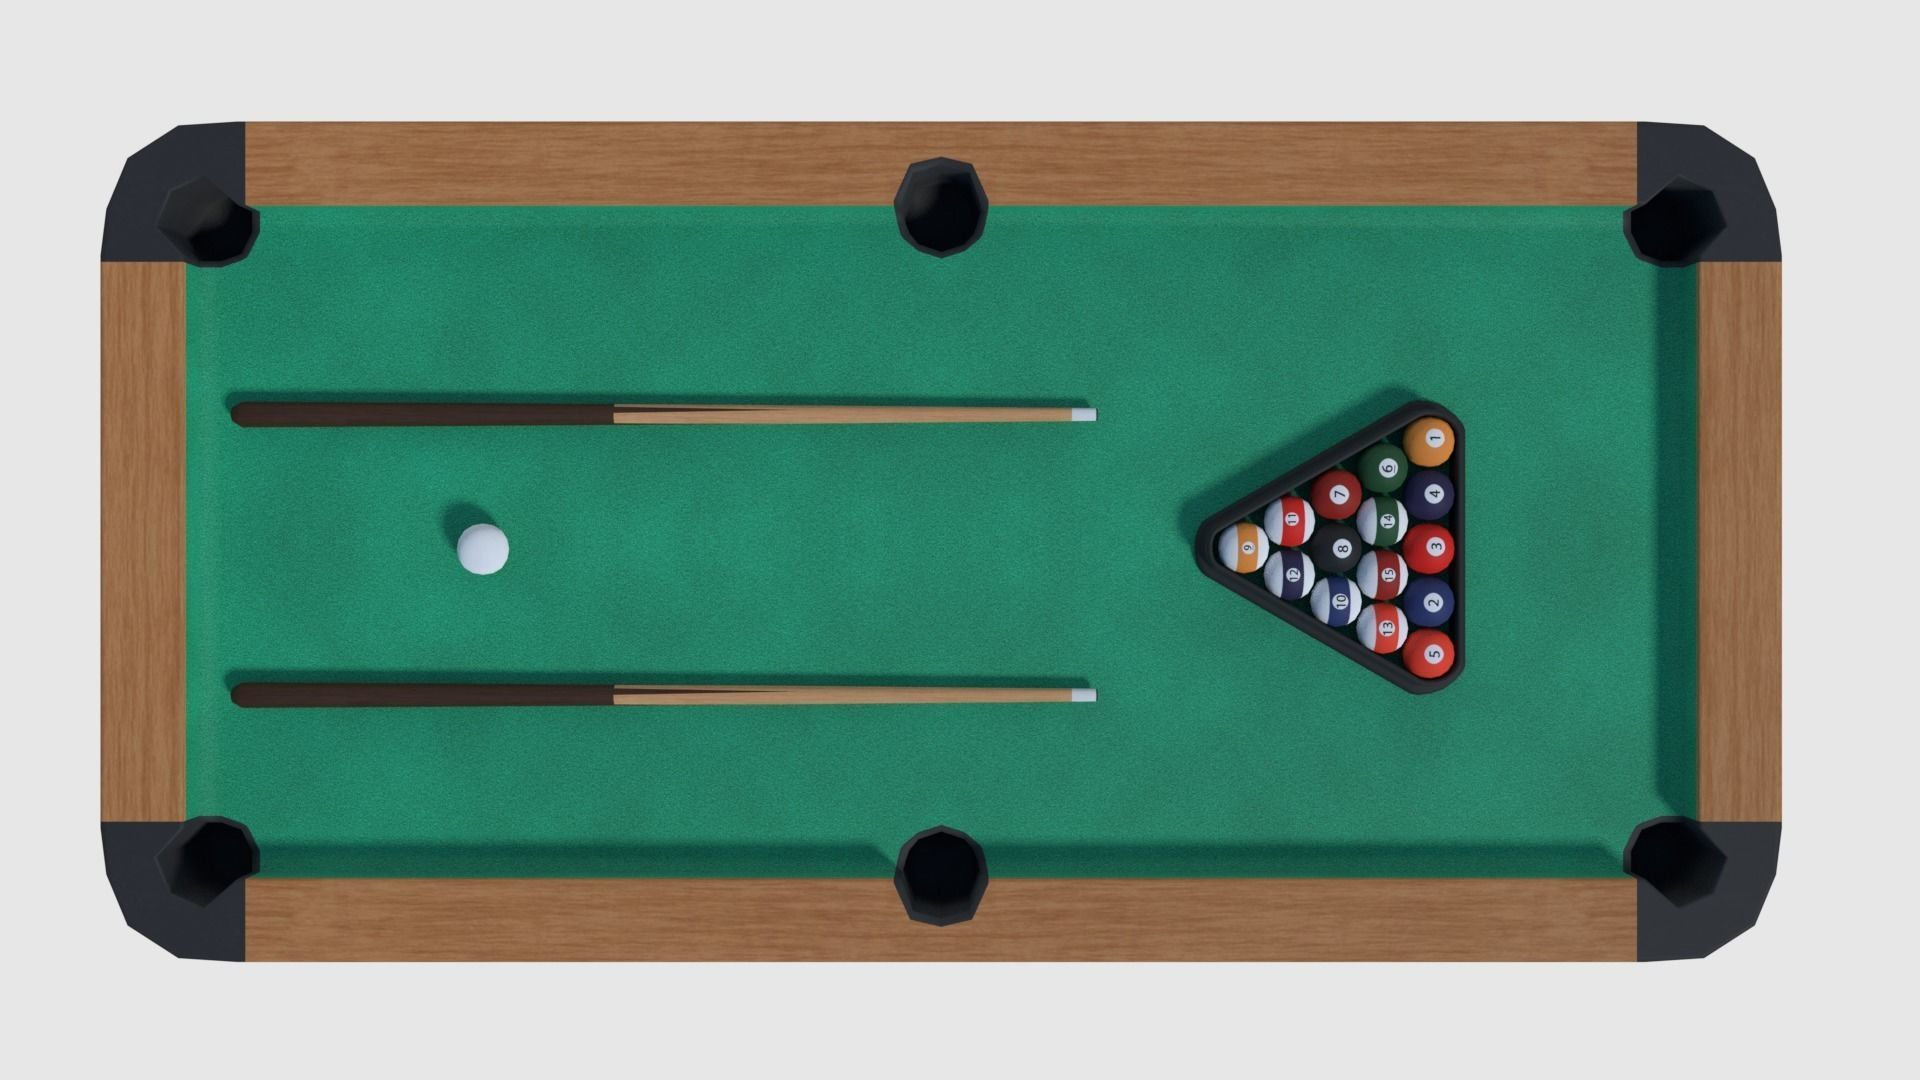 . PlusPng.com pool table - game ready 3d model obj fbx blend dae 4 PlusPng.com  - Pool Table PNG HD